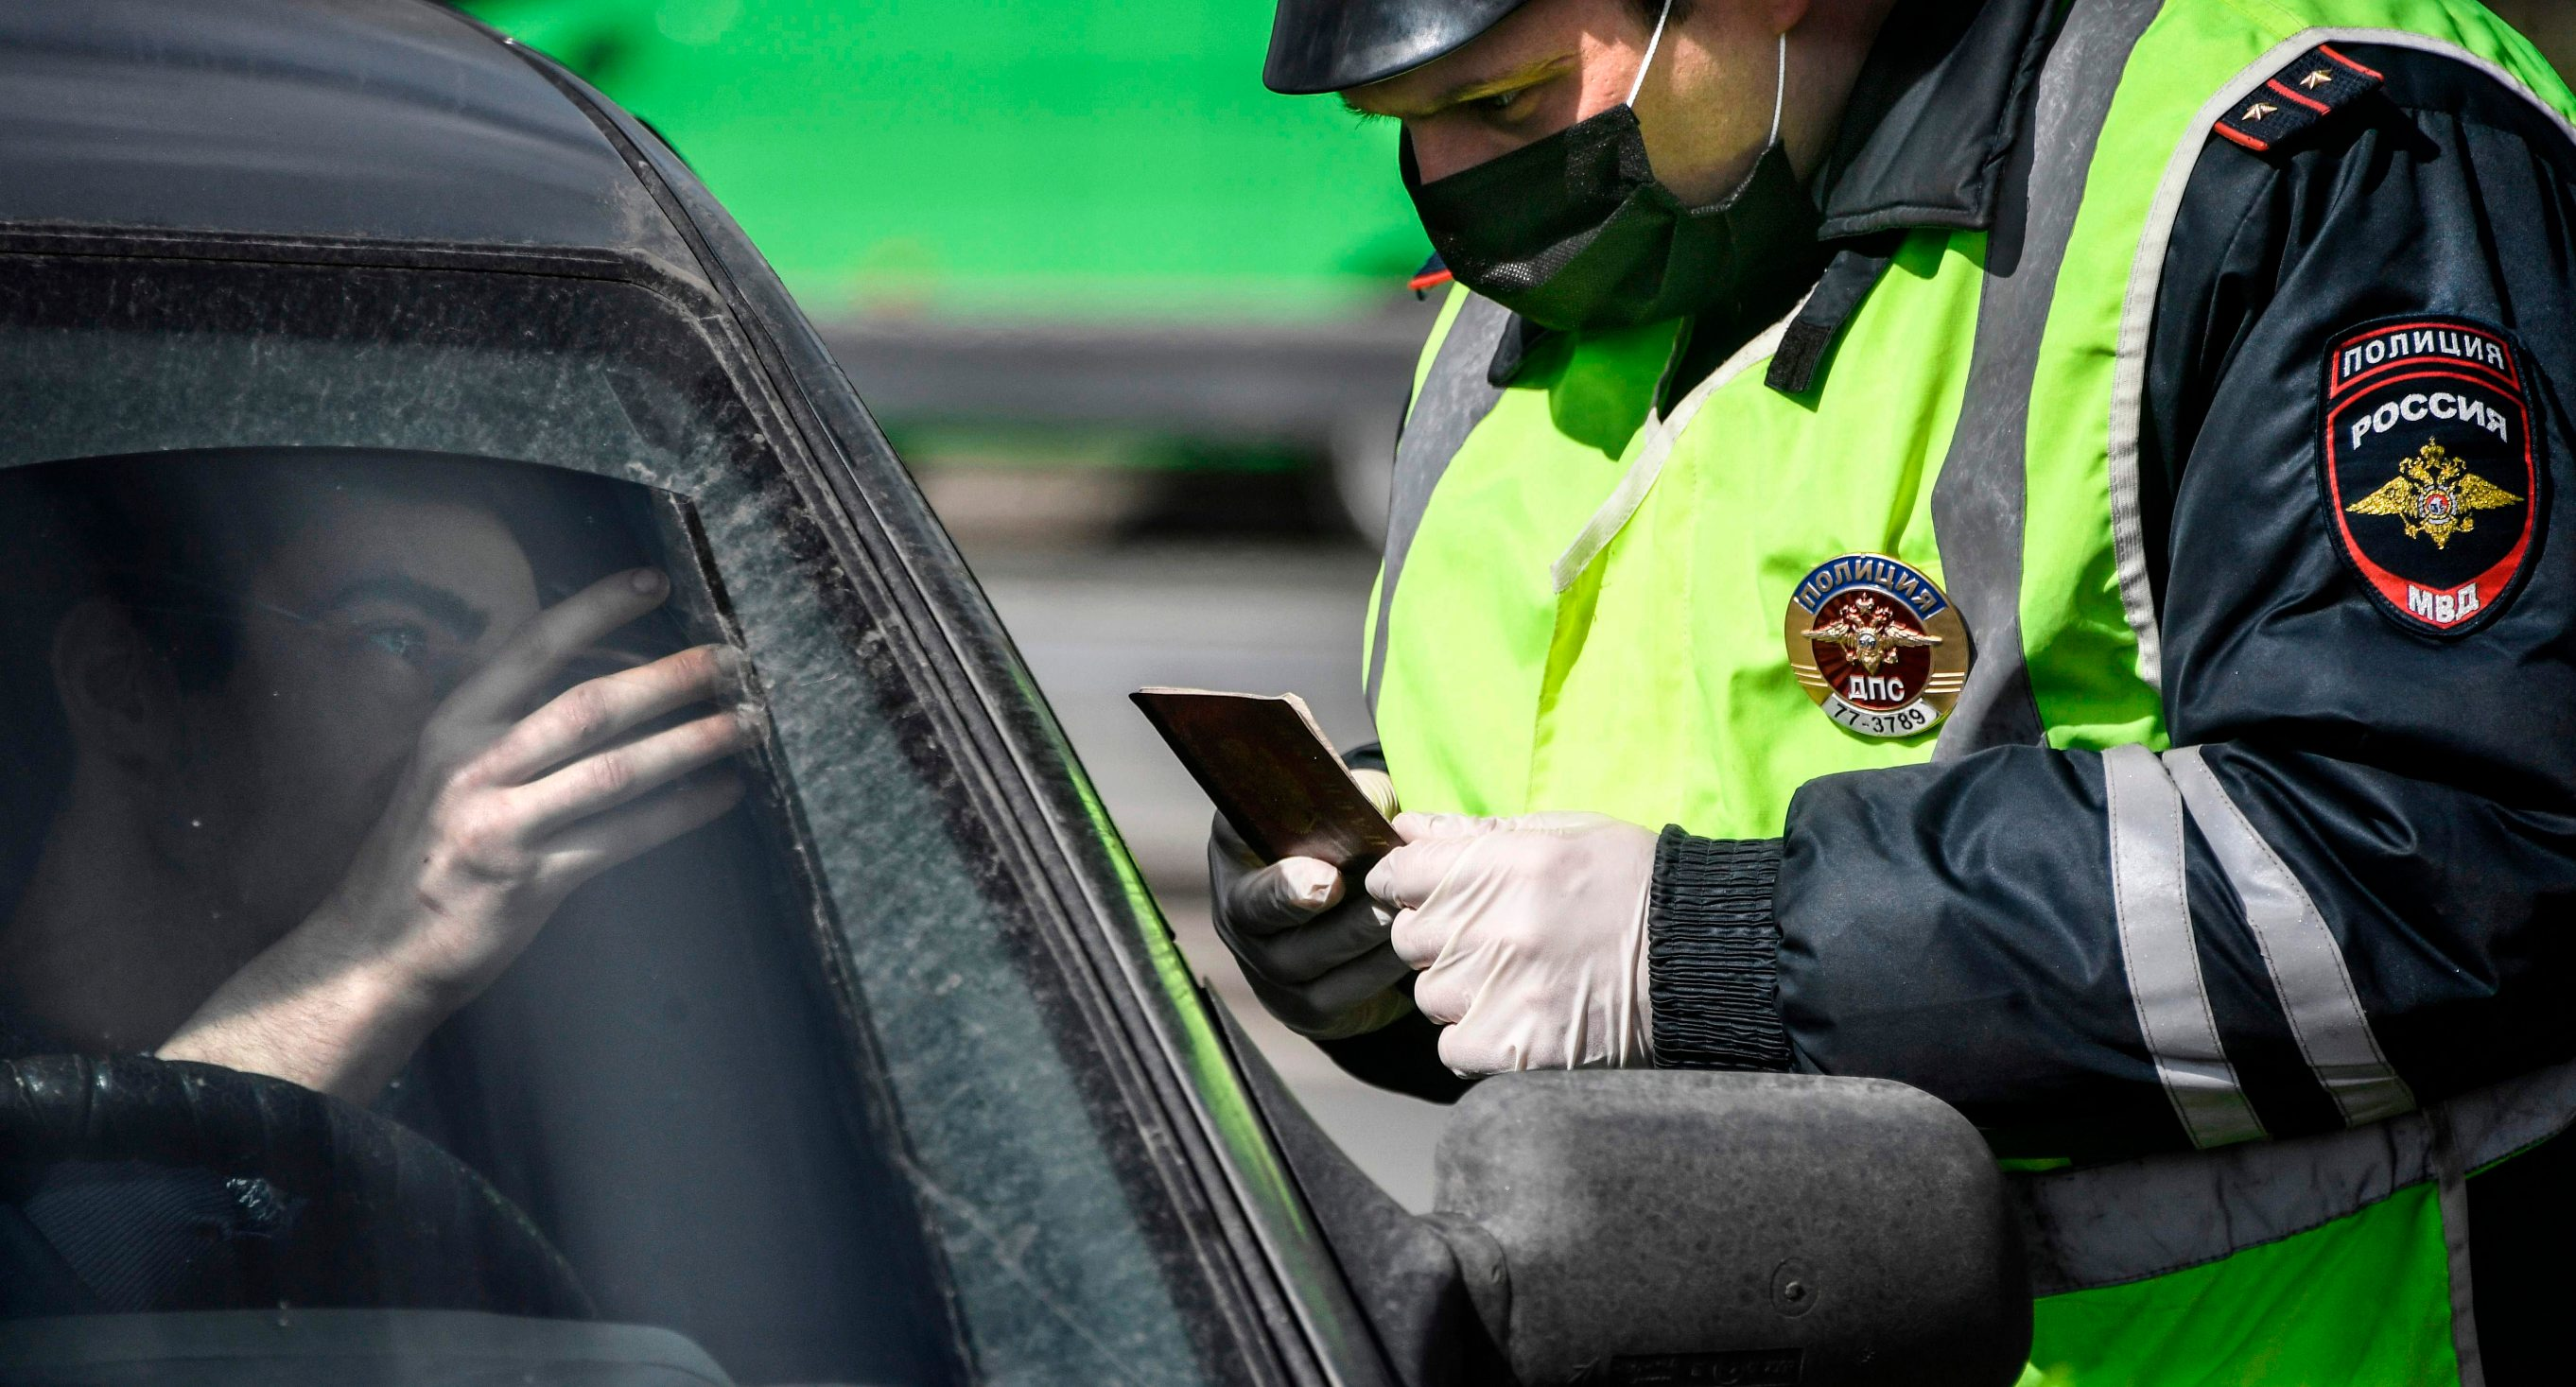 A traffic police officer checks an ID and a pass of a driver at a checkpoint on the outskirts of Moscow after the city authorities introduced a mandatory permit system for people travelling across the city by car or public transport in a bid to stop the spread of the COVID-19 coronavirus, on April 15, 2020. (Photo by Alexander NEMENOV / AFP)